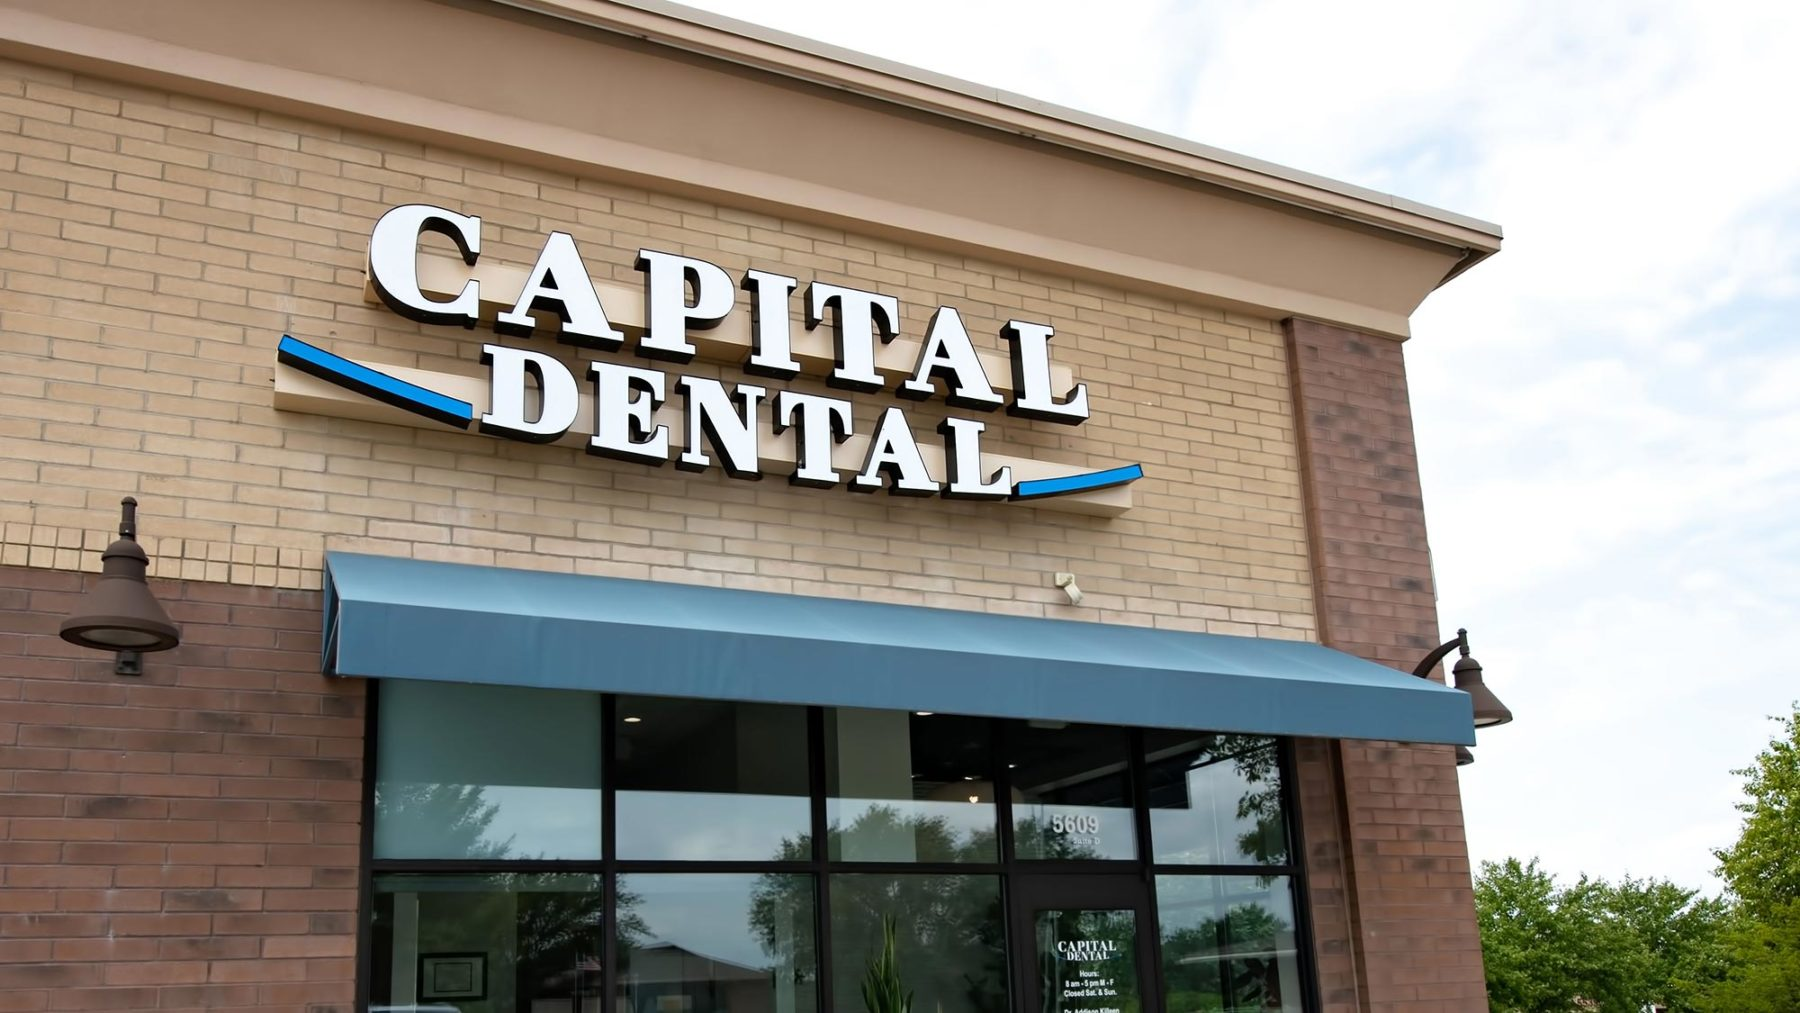 Exterior of the Capital Dental office in Lincoln, Nebraska